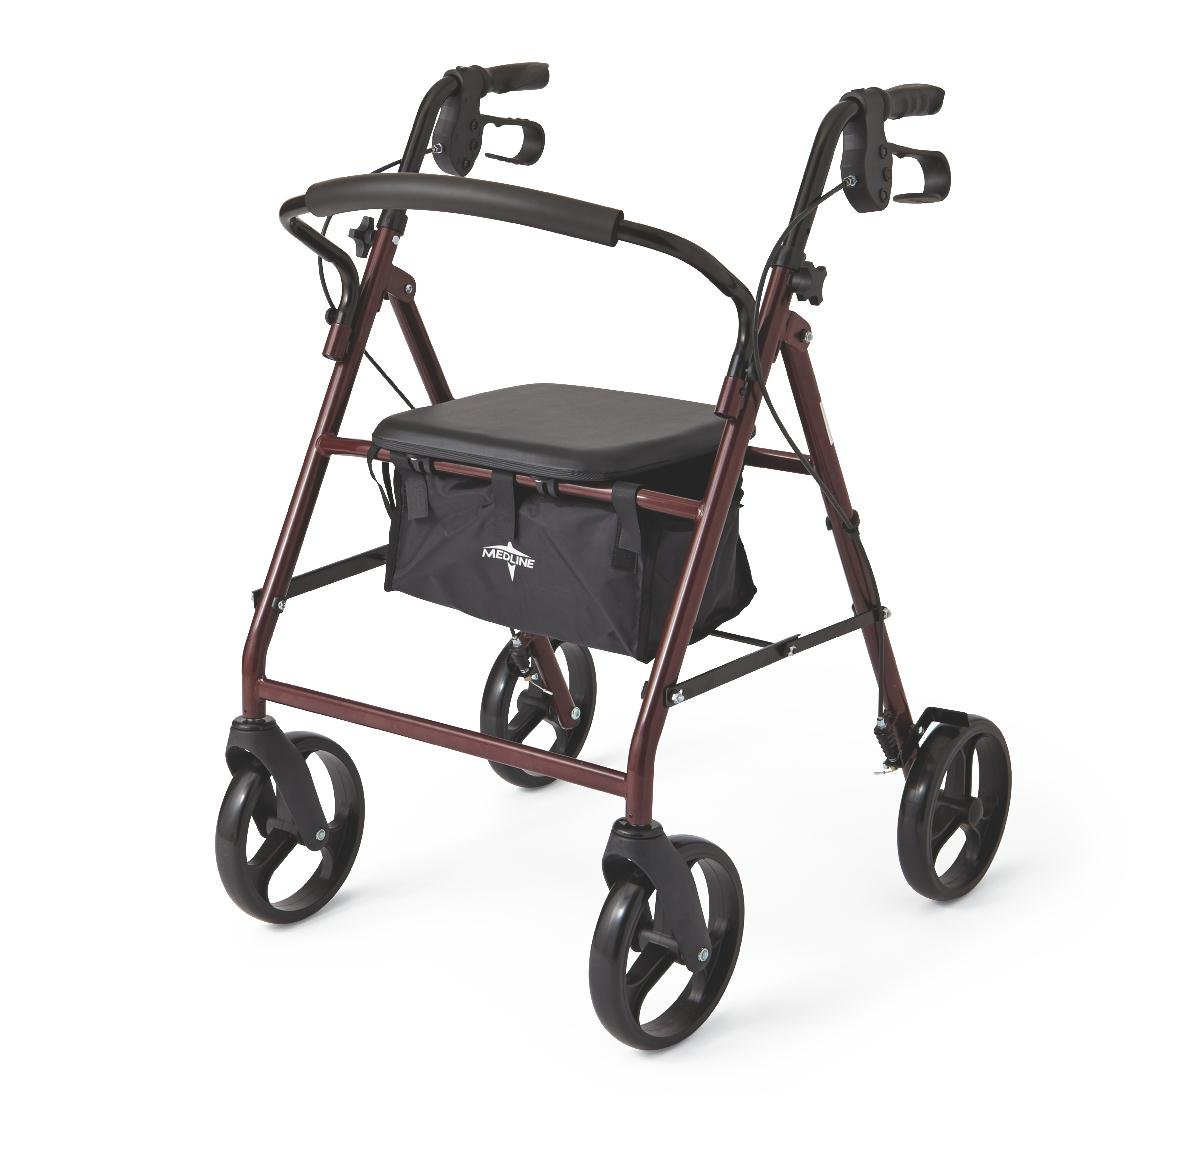 Medline Standard Adult Steel Folding Rollator Walker Aid with 8 Inch Wheels, Burgundy